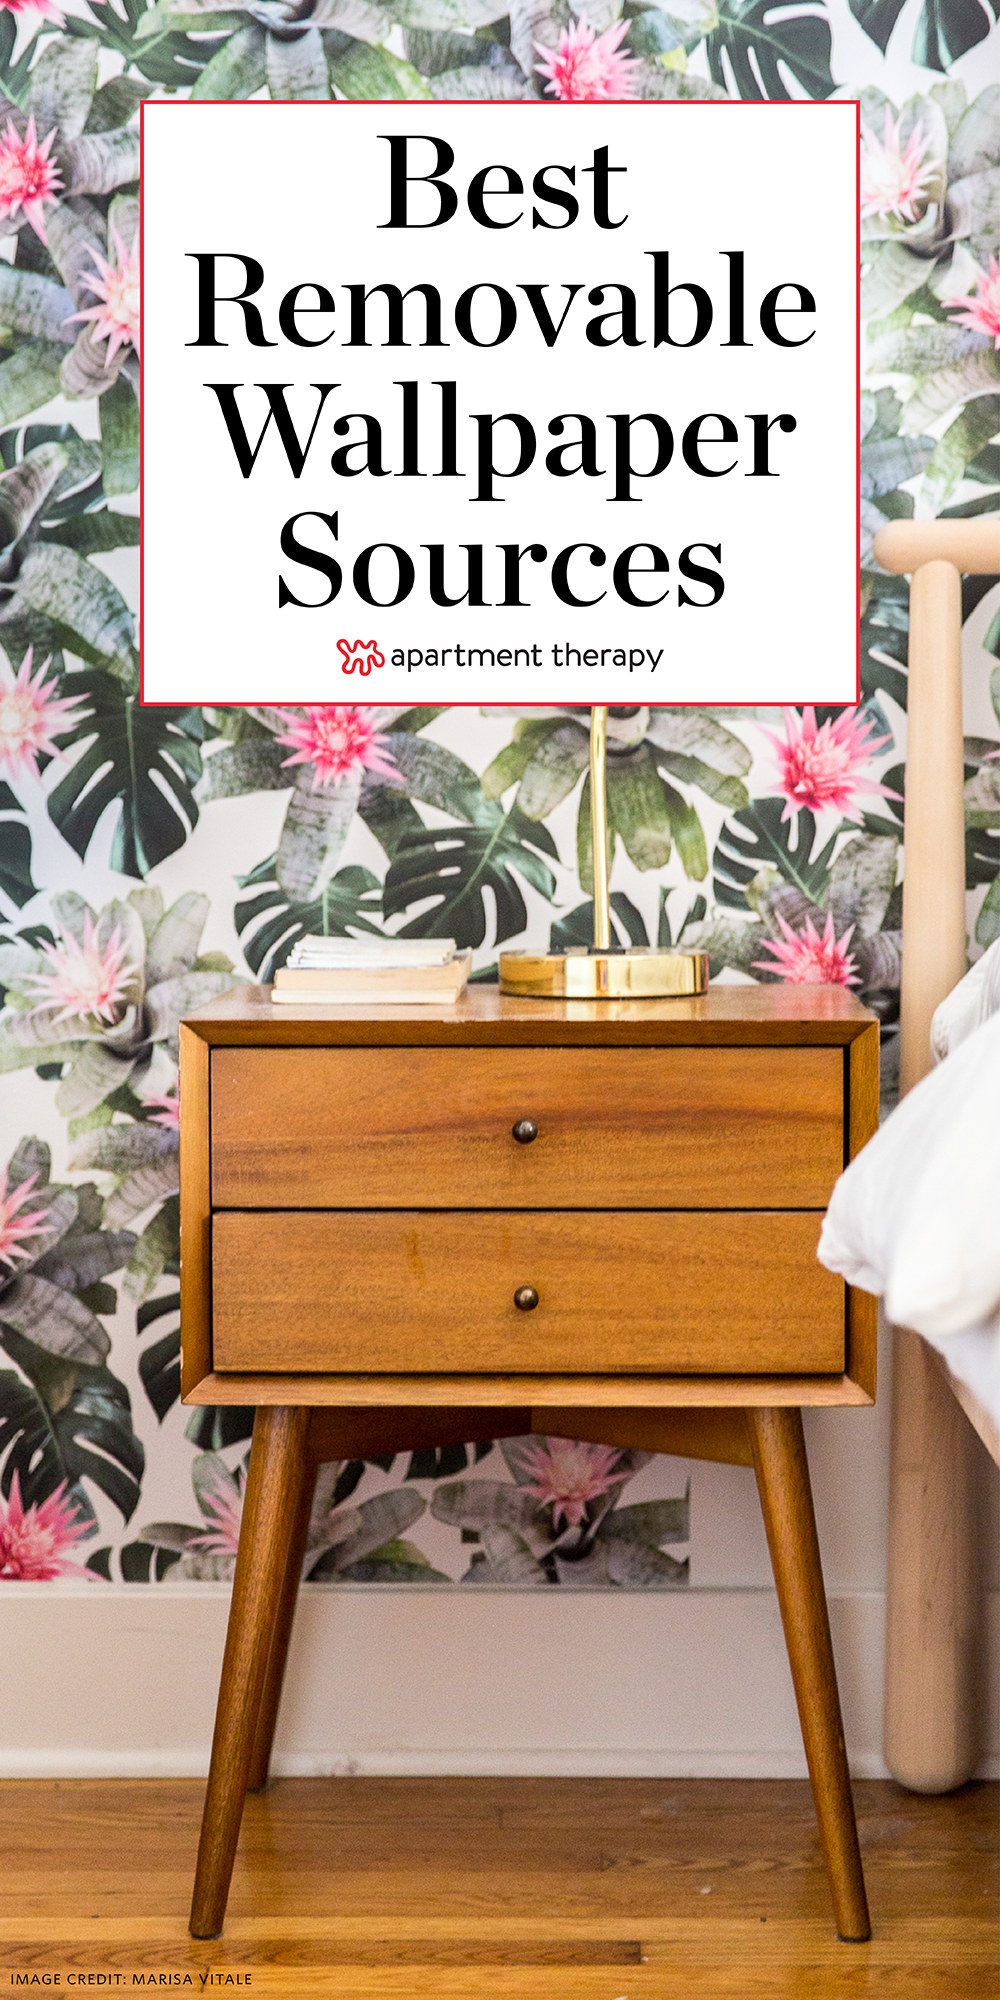 Removable Wallpaper - Sources for Renters | Apartment Therapy